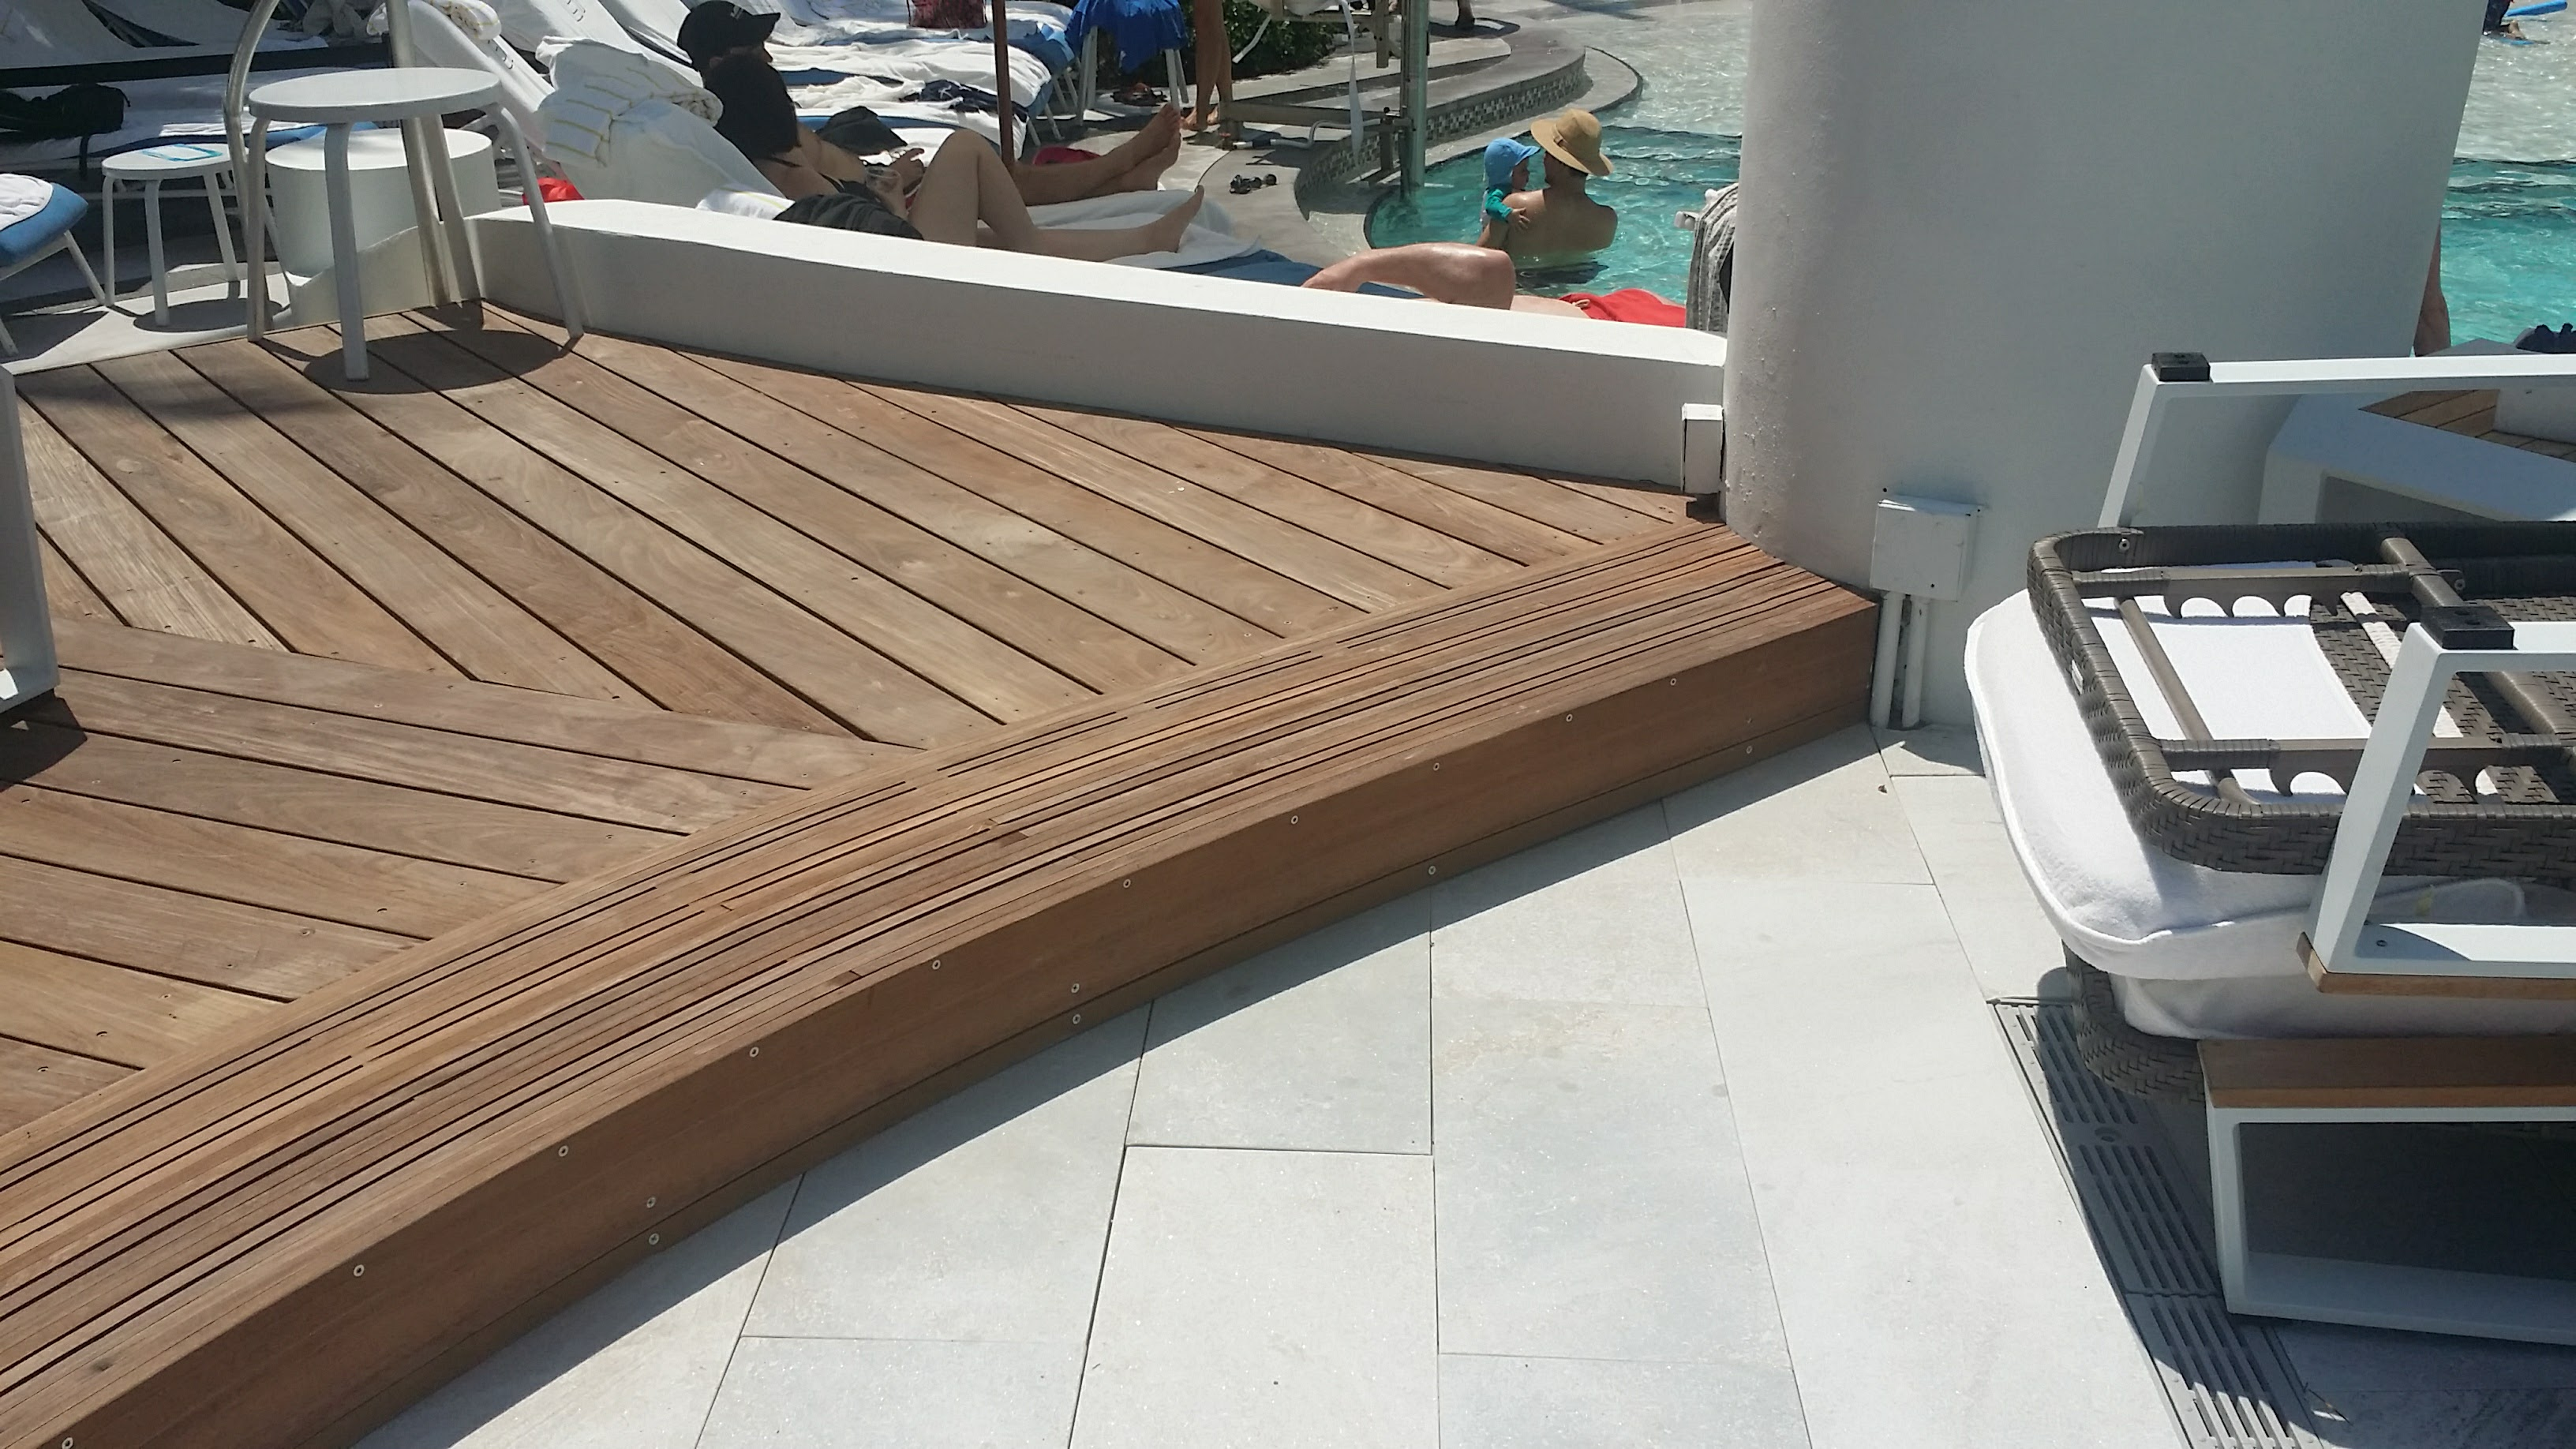 IPE Deck Loews